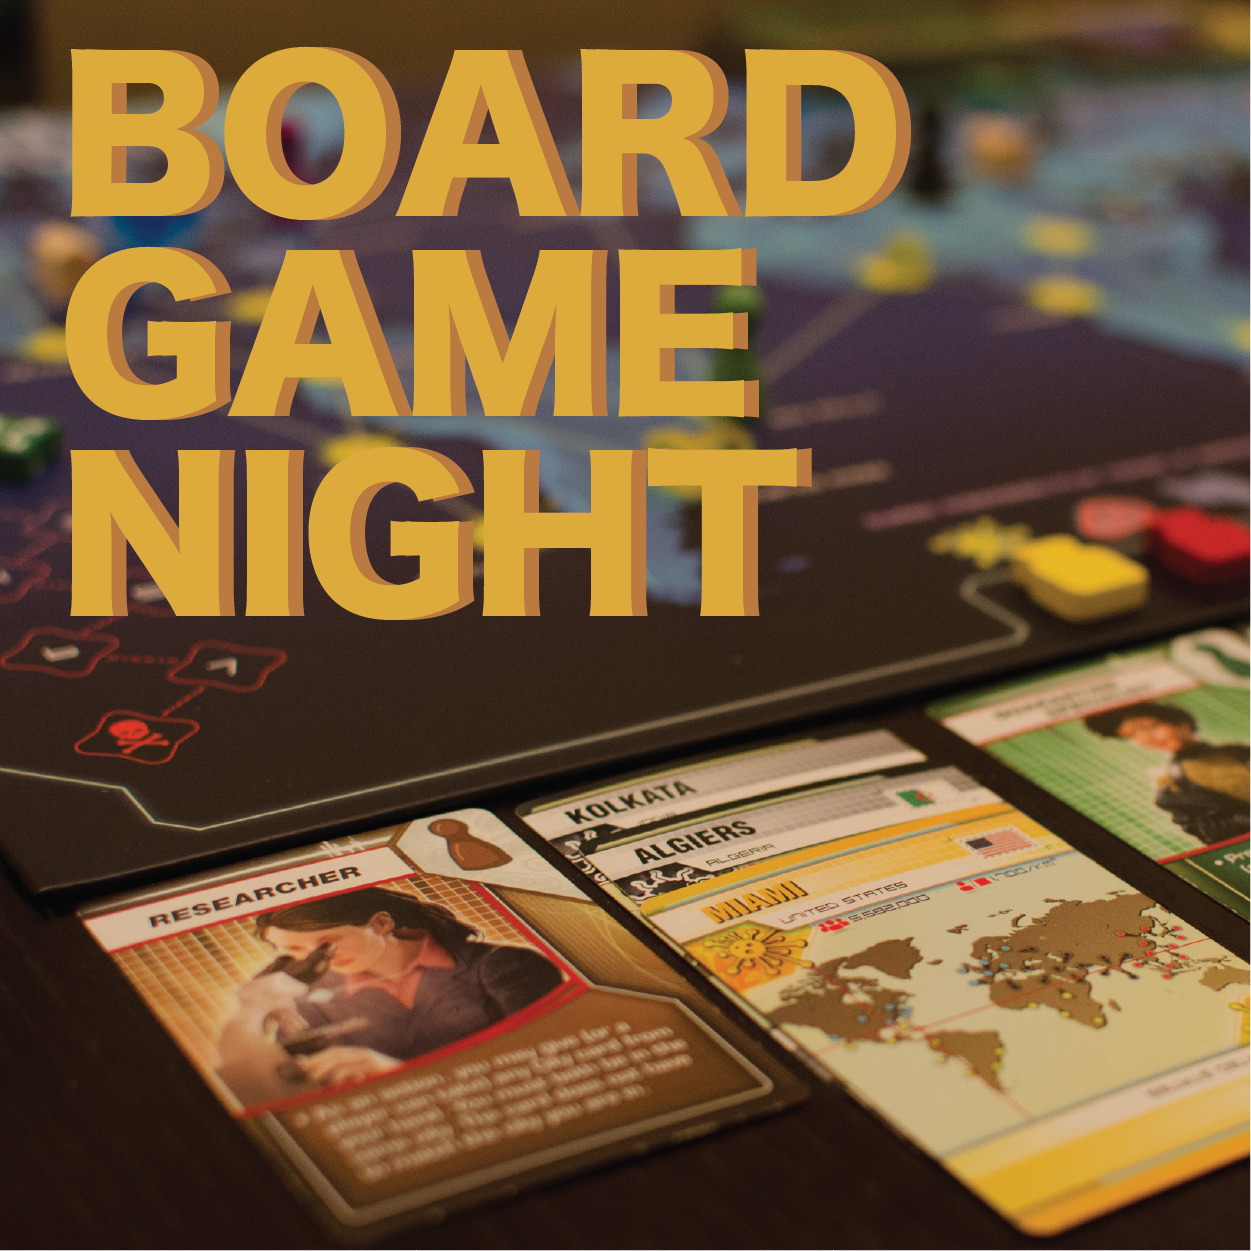 Catan, Ticket To Ride, Pandemic - Any of those ring a bell? Then come join us for a fun night of board games and friends! Even if those names don't sound familiar, our Red Rock Board Game Night is a great way to play a favorite or new board game, and make some friends in the process. Downstairs we have our hosted 'Premier' games with John, Nik & Peter - we rotate these games regularly and showcase new games. Upstairs is a free play area where anyone can bring a board game and host, or join a game with others.  Sign up here to get reminders, hear what we're playing, and reserve your seat for future board game nights.